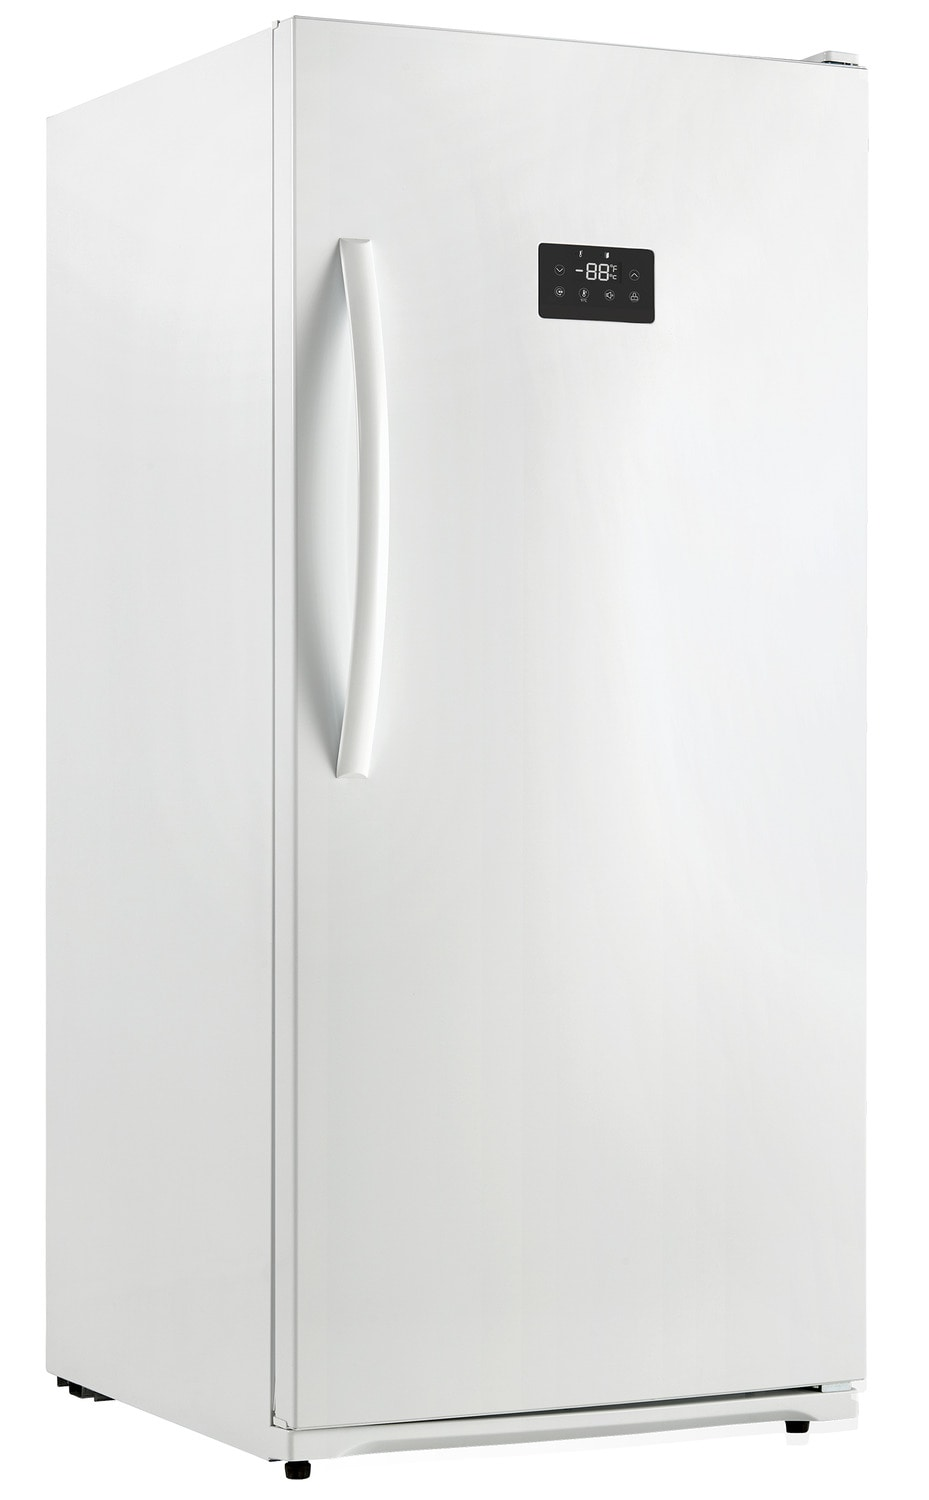 Refrigerators and Freezers - Danby White Upright Freezer (13.8 Cu. Ft.) - DUF138E1WDD